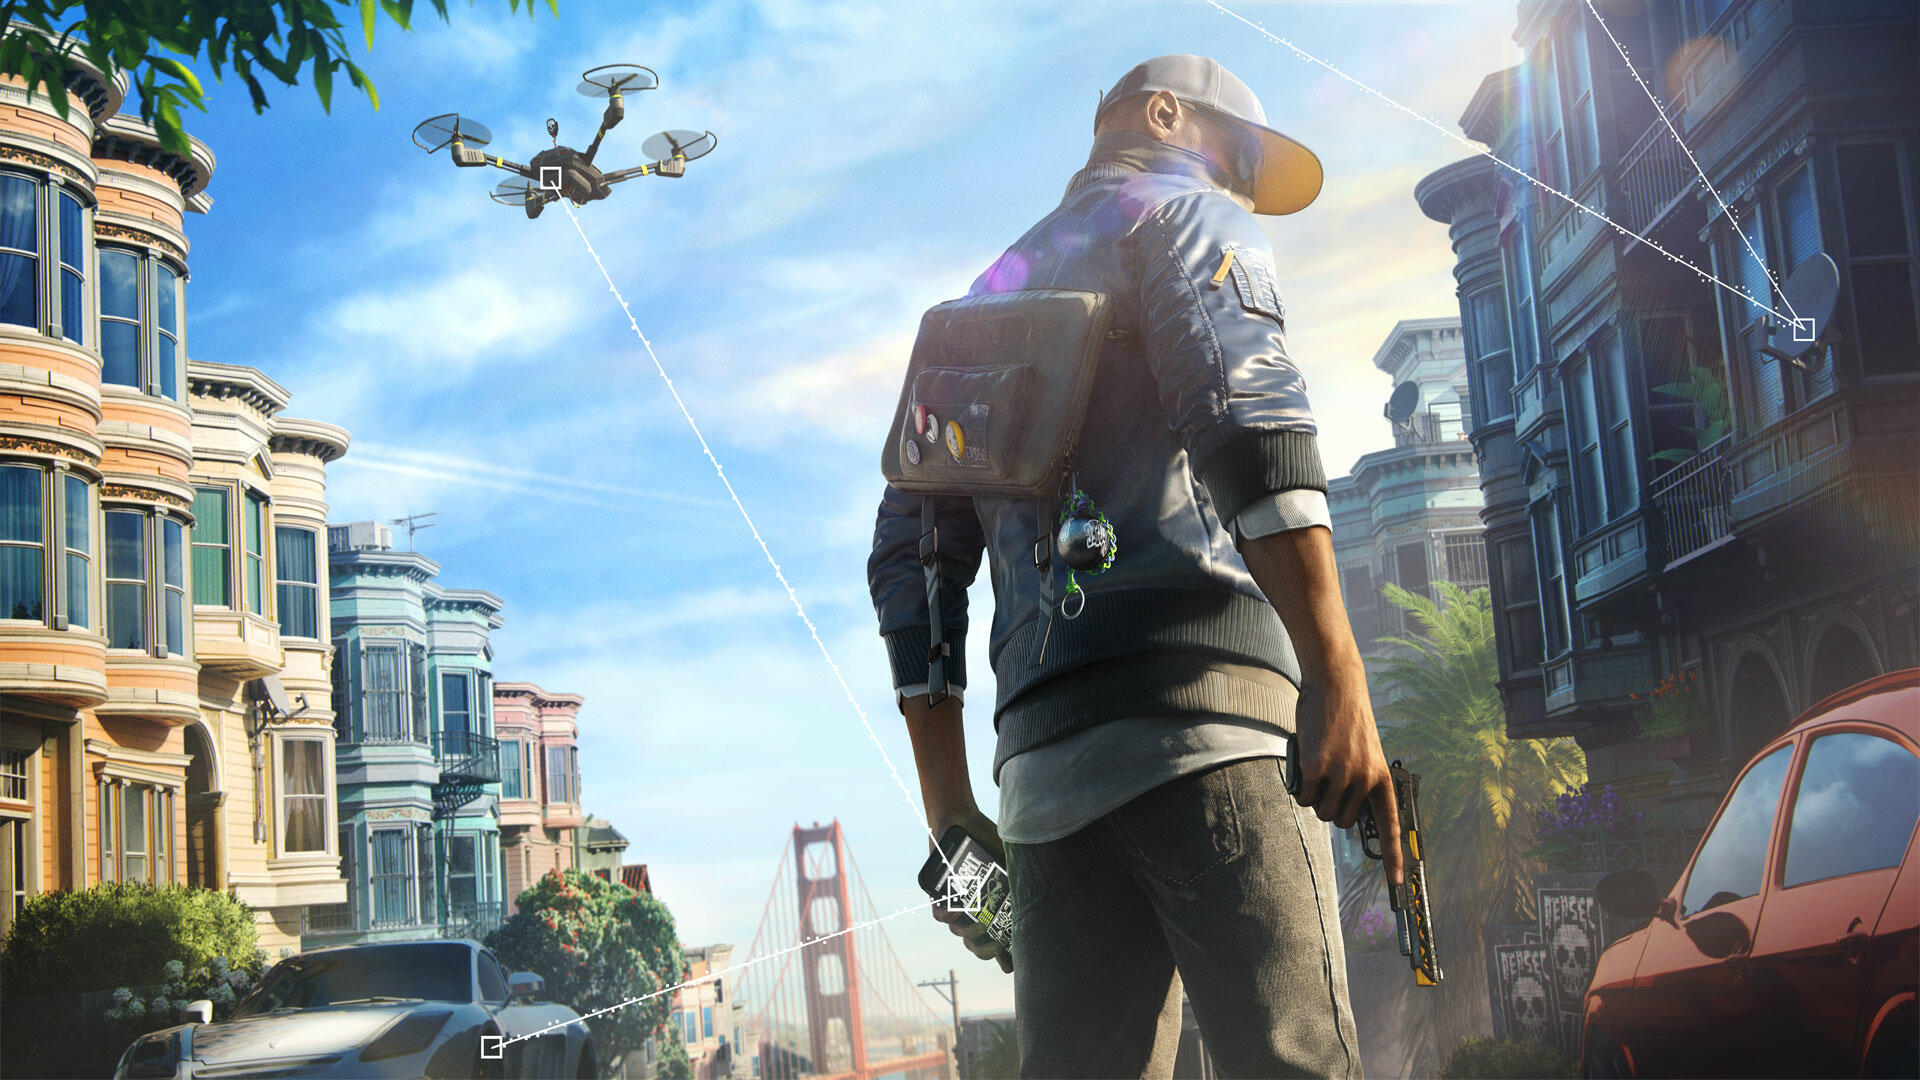 Watch Dogs Legion Leaks on Amazon UK, Will be Set in Post-Brexit London